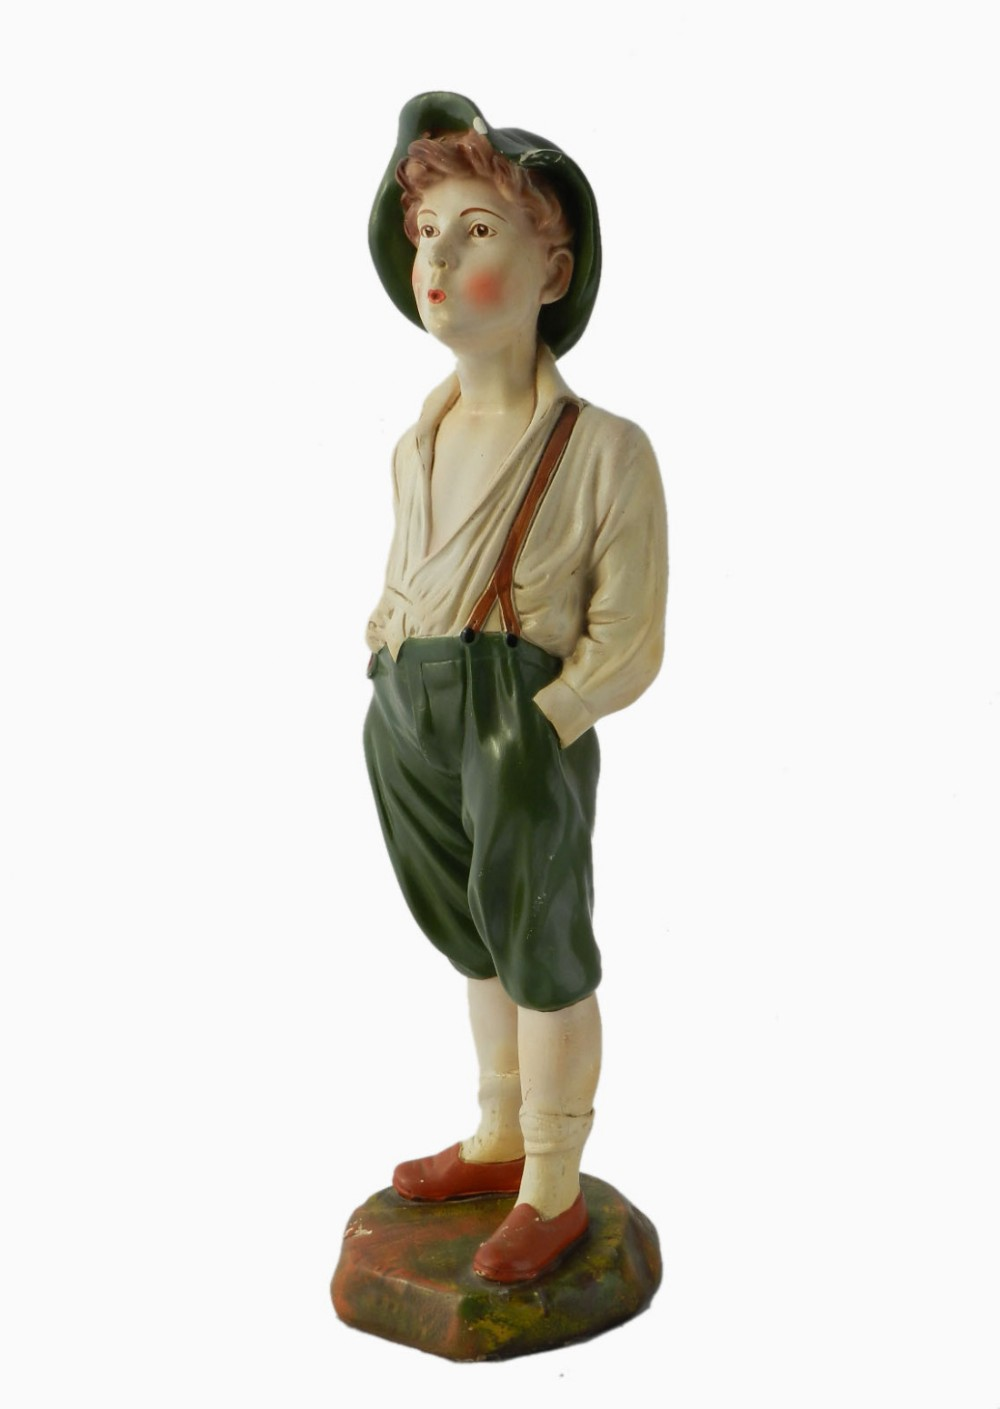 Art deco statue whistling boy chalk ware plaster original paint 440729 - Deco boy ...